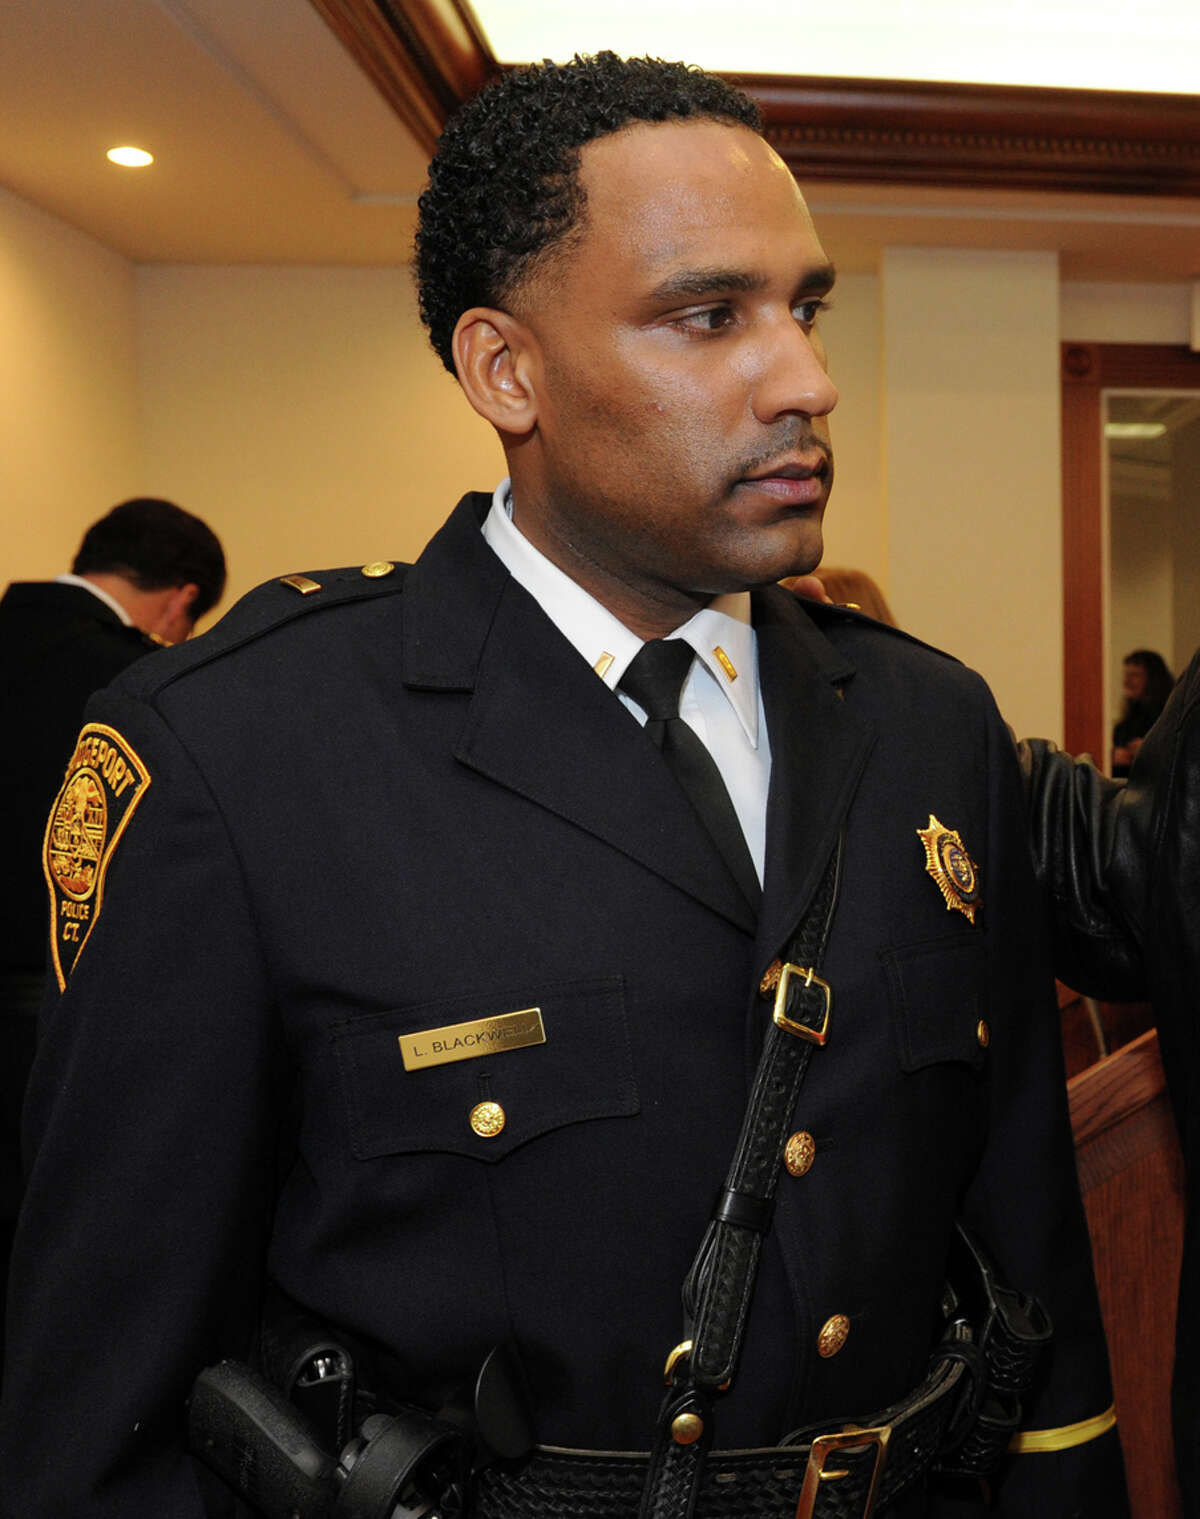 Bridgeport Police Lt. Lonnie Blackwell, leader of the Bridgeport Guardians, was relieved of his command of the training academy and placed on administrative duty by Police Chief Joseph Gaudett pending possible firing.